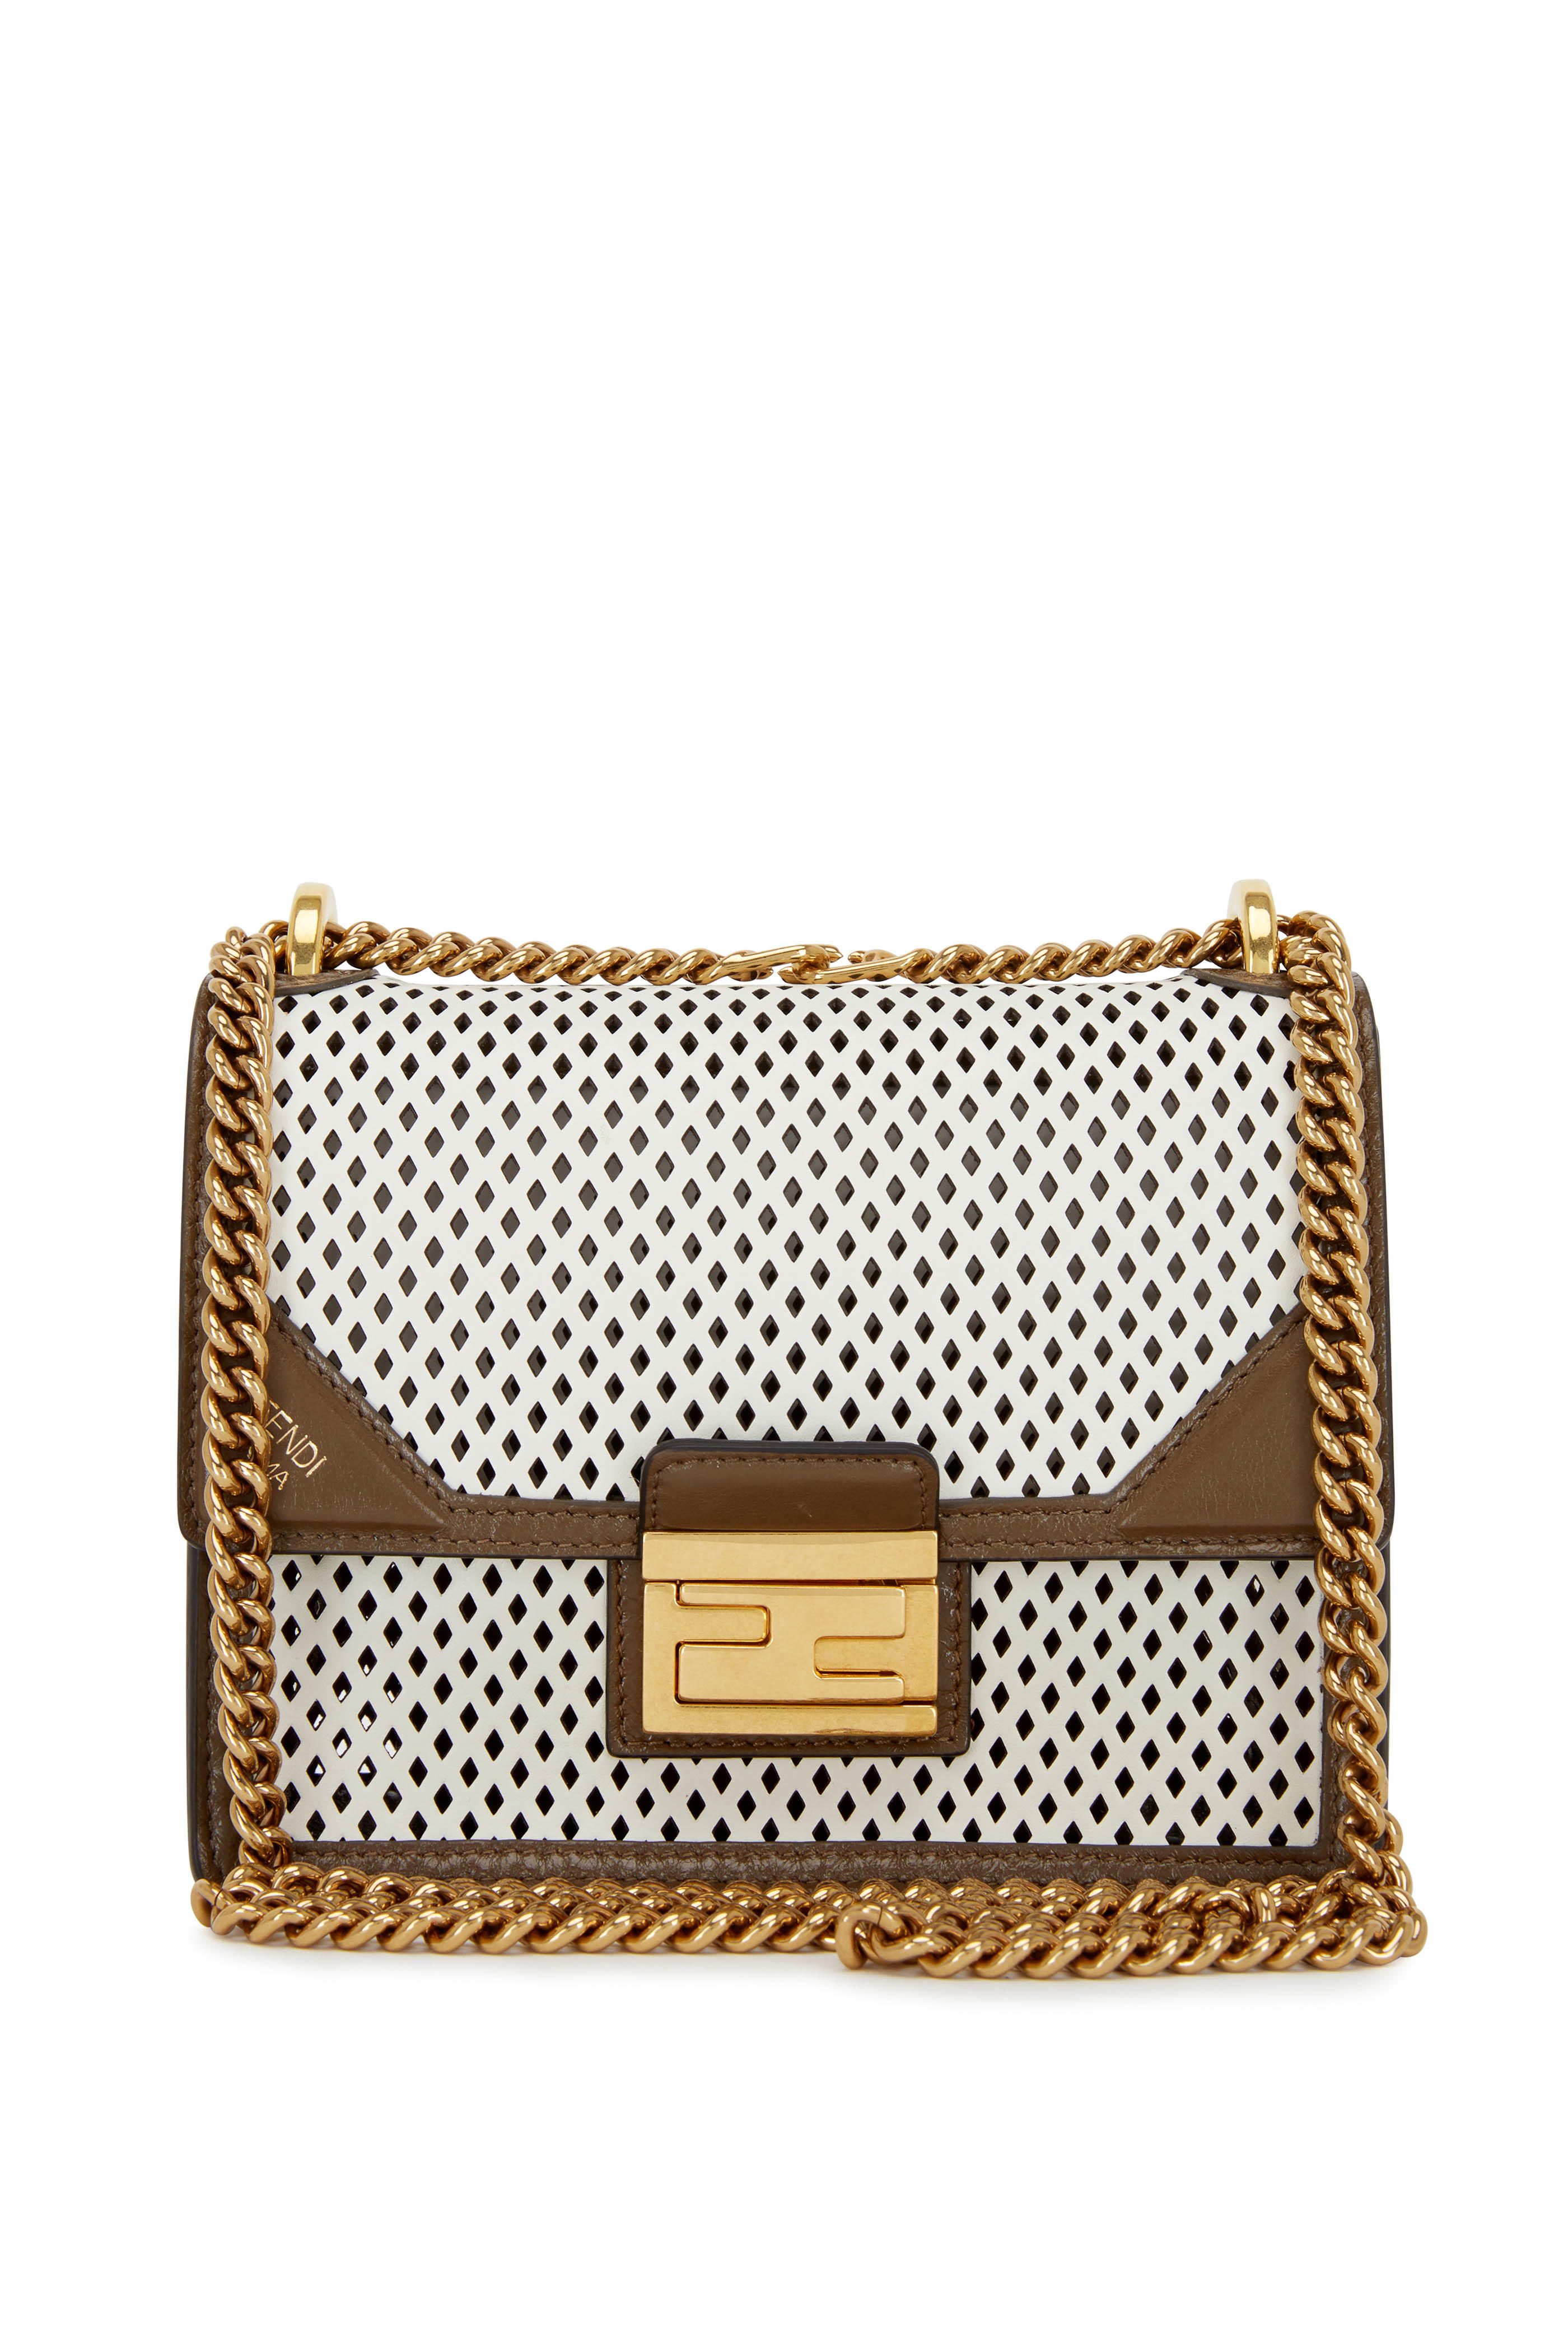 0c92fb17 Fendi - Kan U White & Brown Perforated Leather Small Bag | Mitchell ...